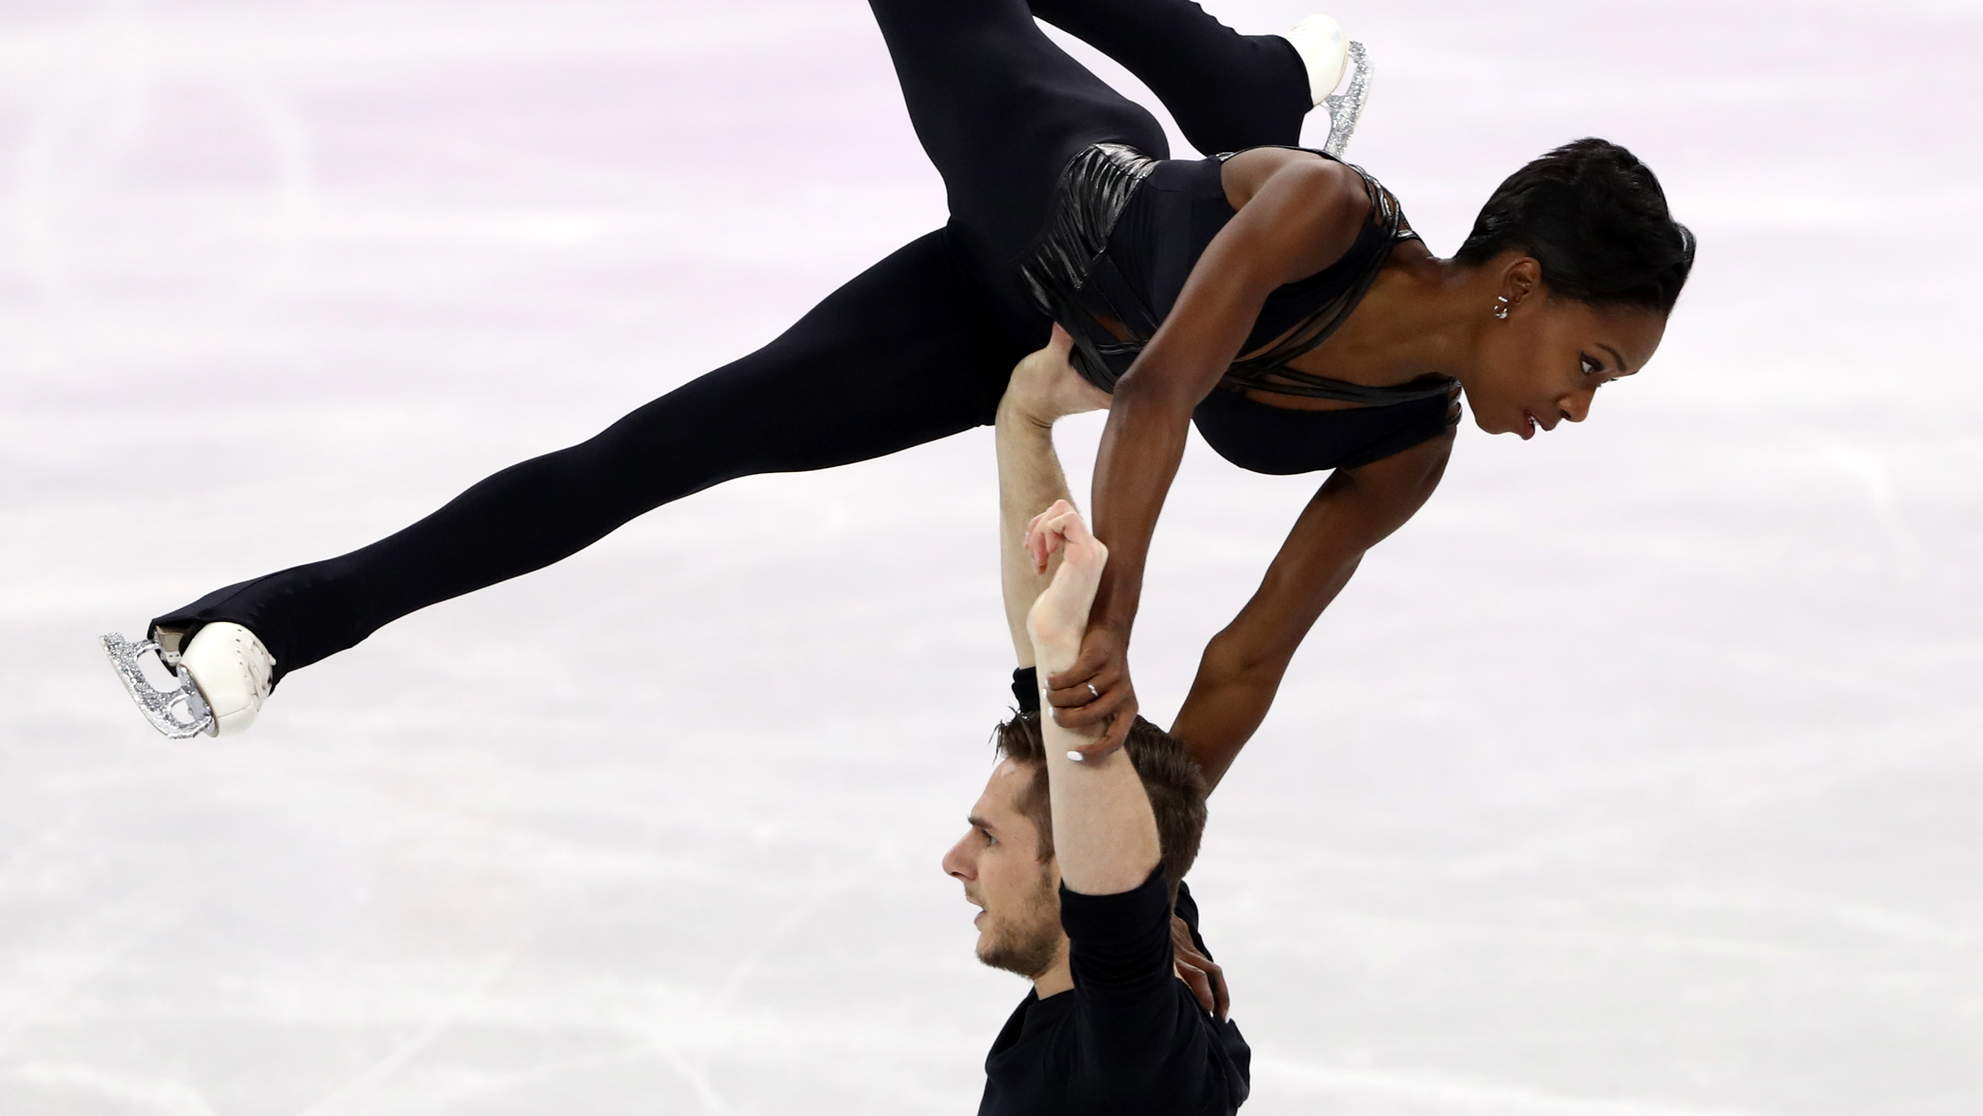 The Internet Is Living for This French Figure Skating Pair's Heavy Metal Performance